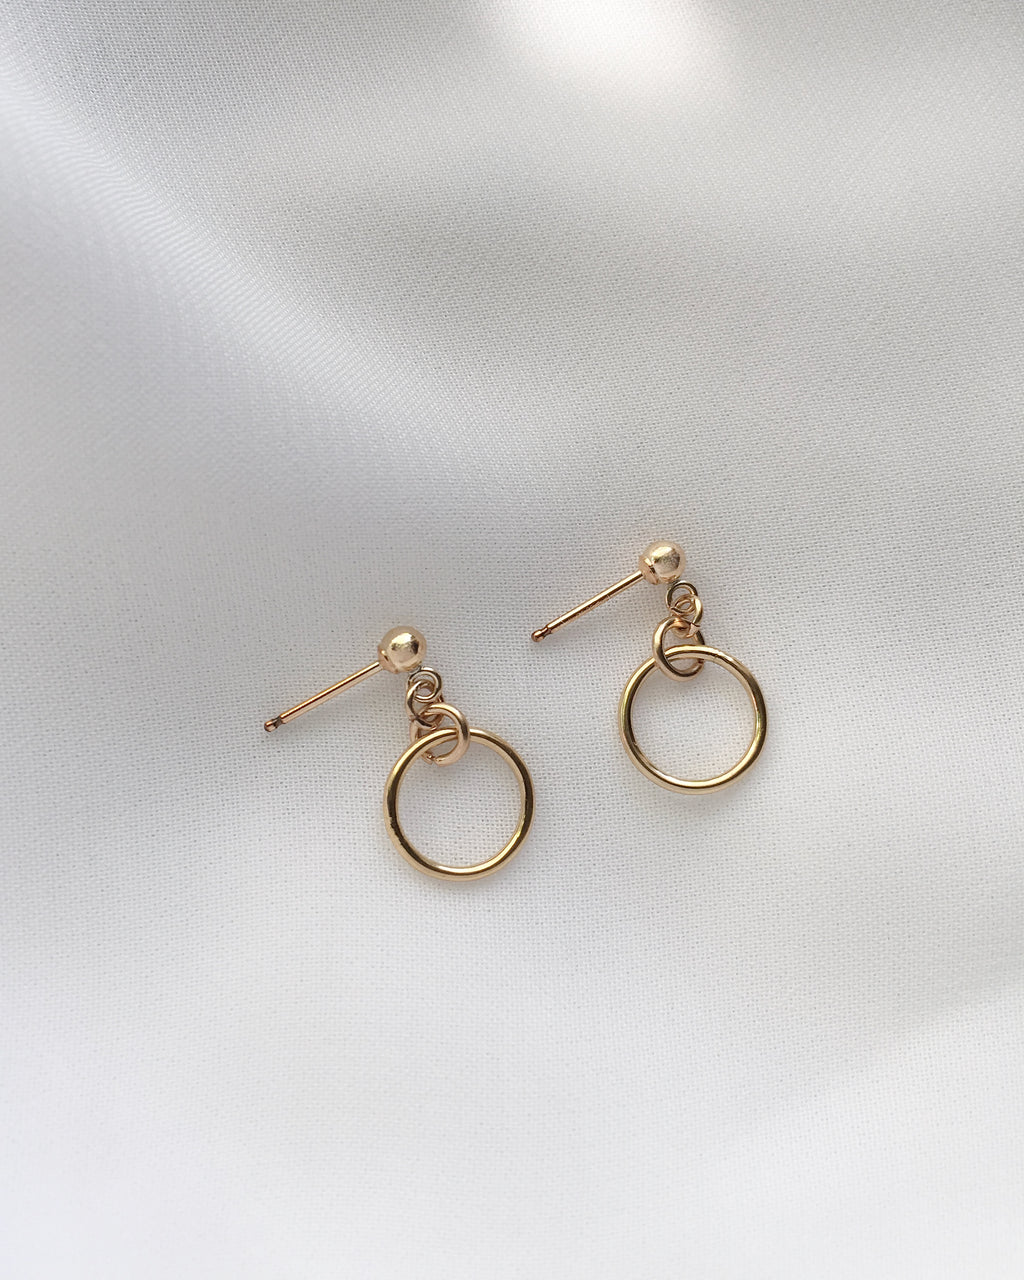 Mini Open Circle Drop Earrings in Gold Filled or Sterling Silver | IB Jewelry